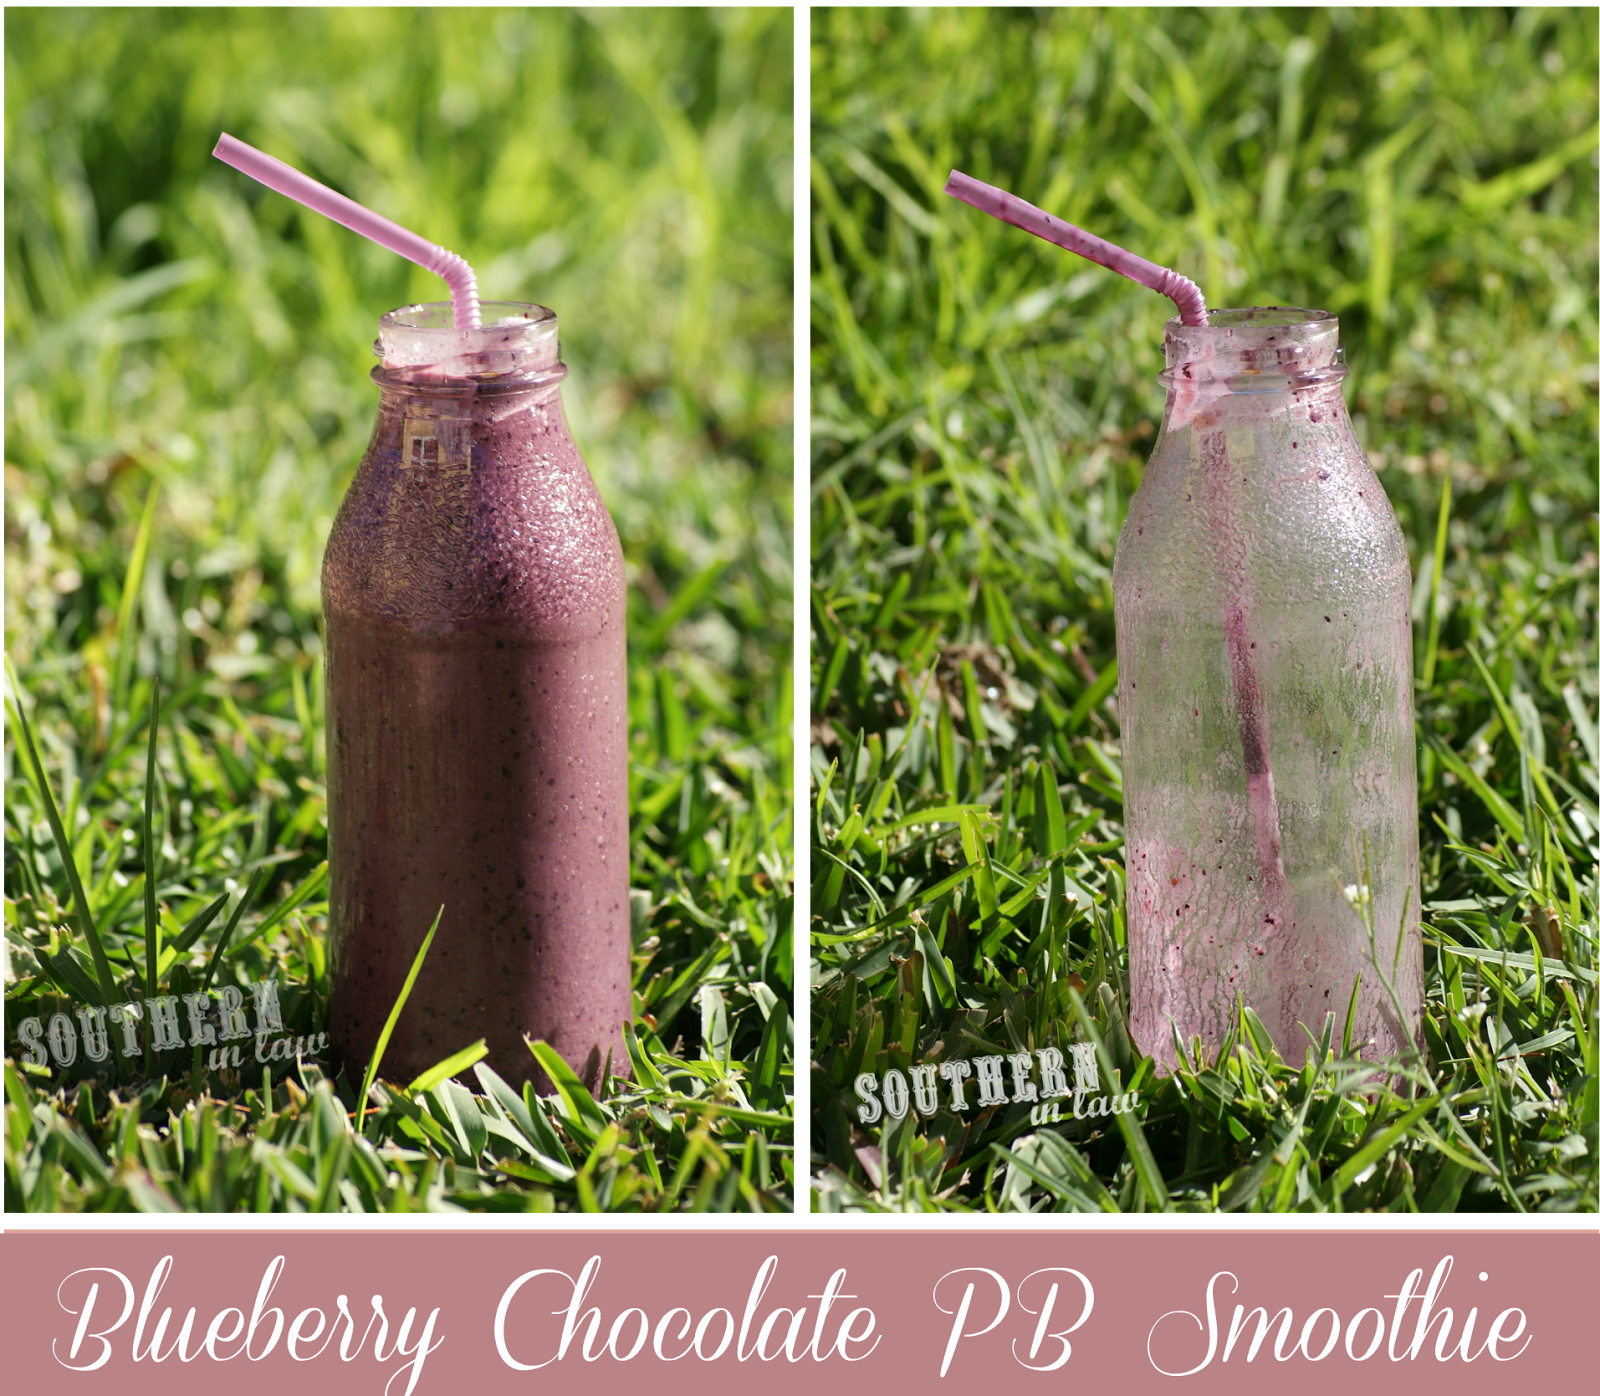 Blueberry Cocoa Peanut Butter Smoothie - Gluten Free, Vegan, Healthy